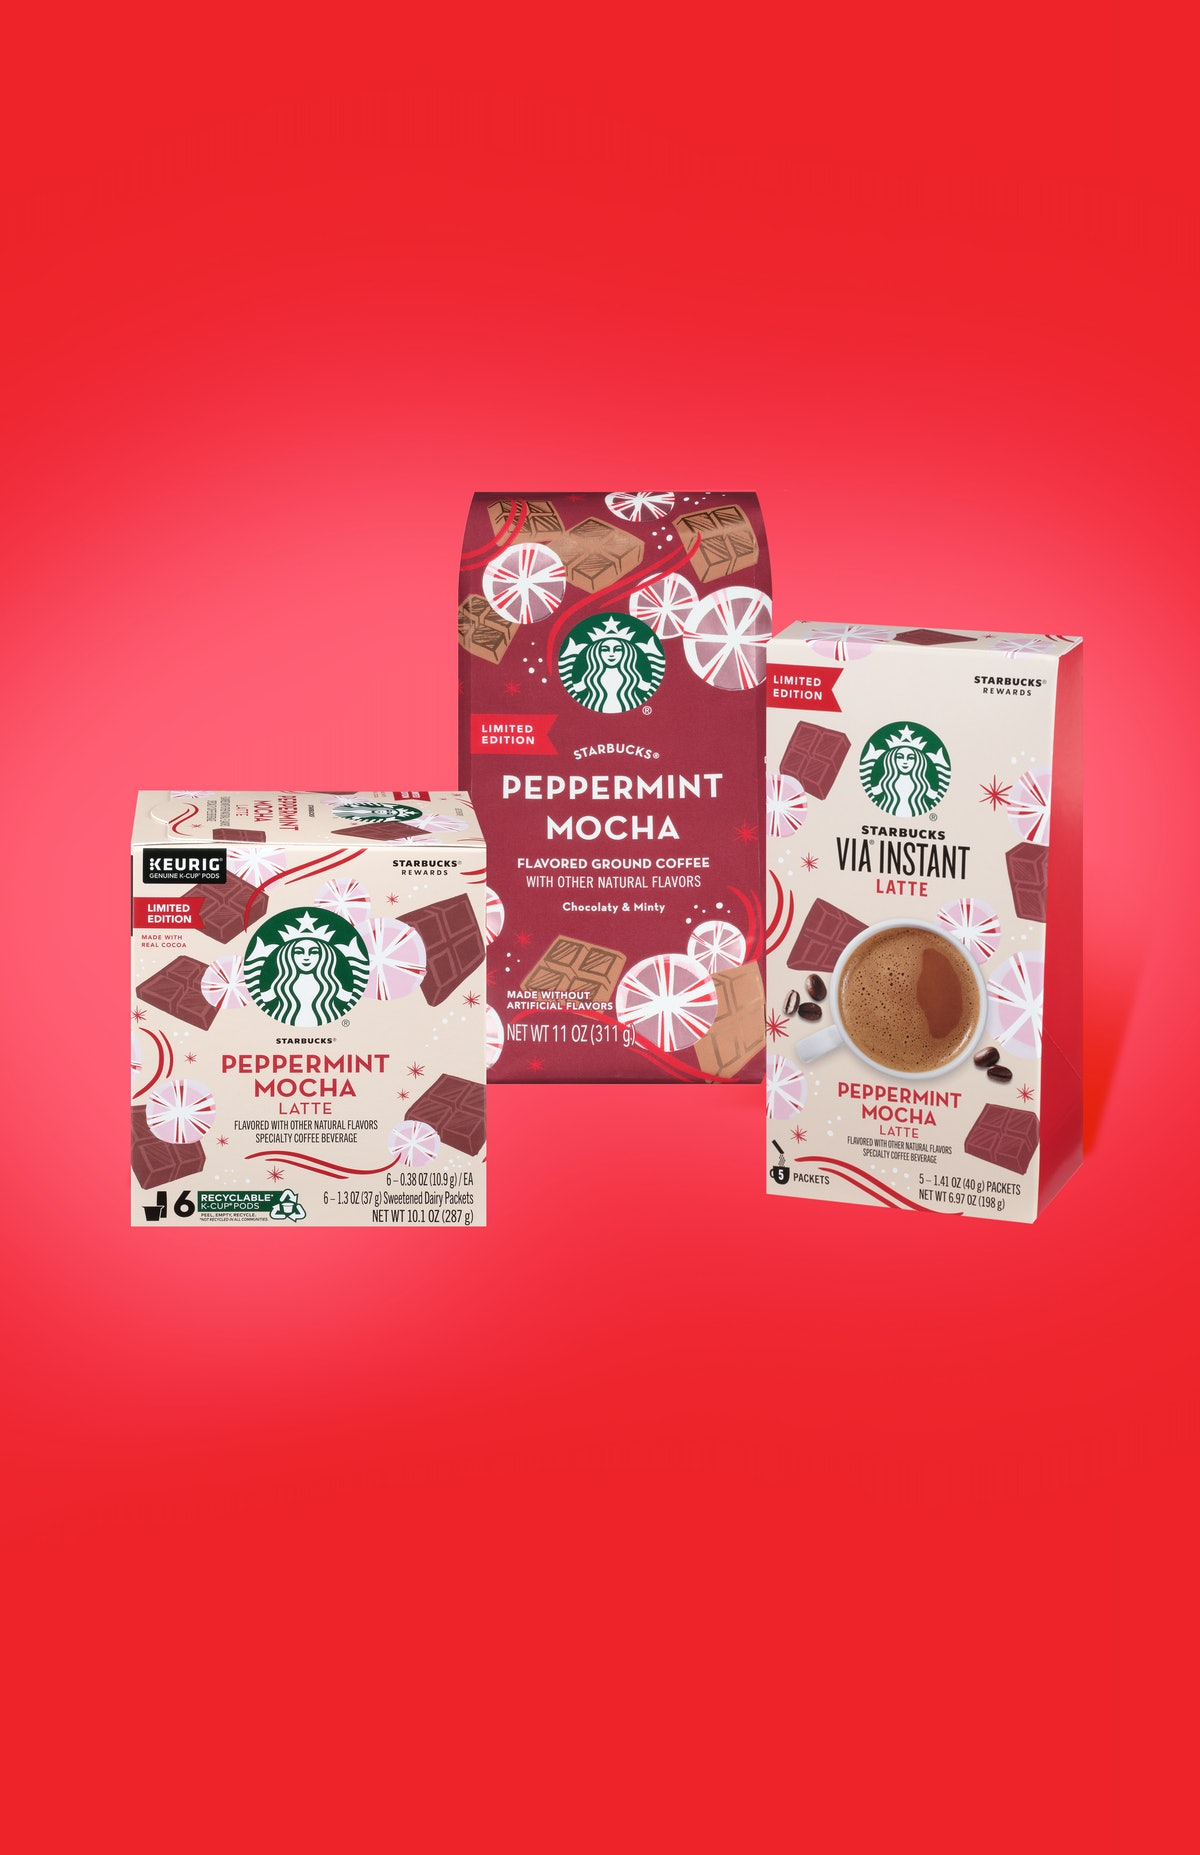 Starbucks' At-Home Holiday 2019 Coffee Collection has three different options for a Peppermint Mocha at home.